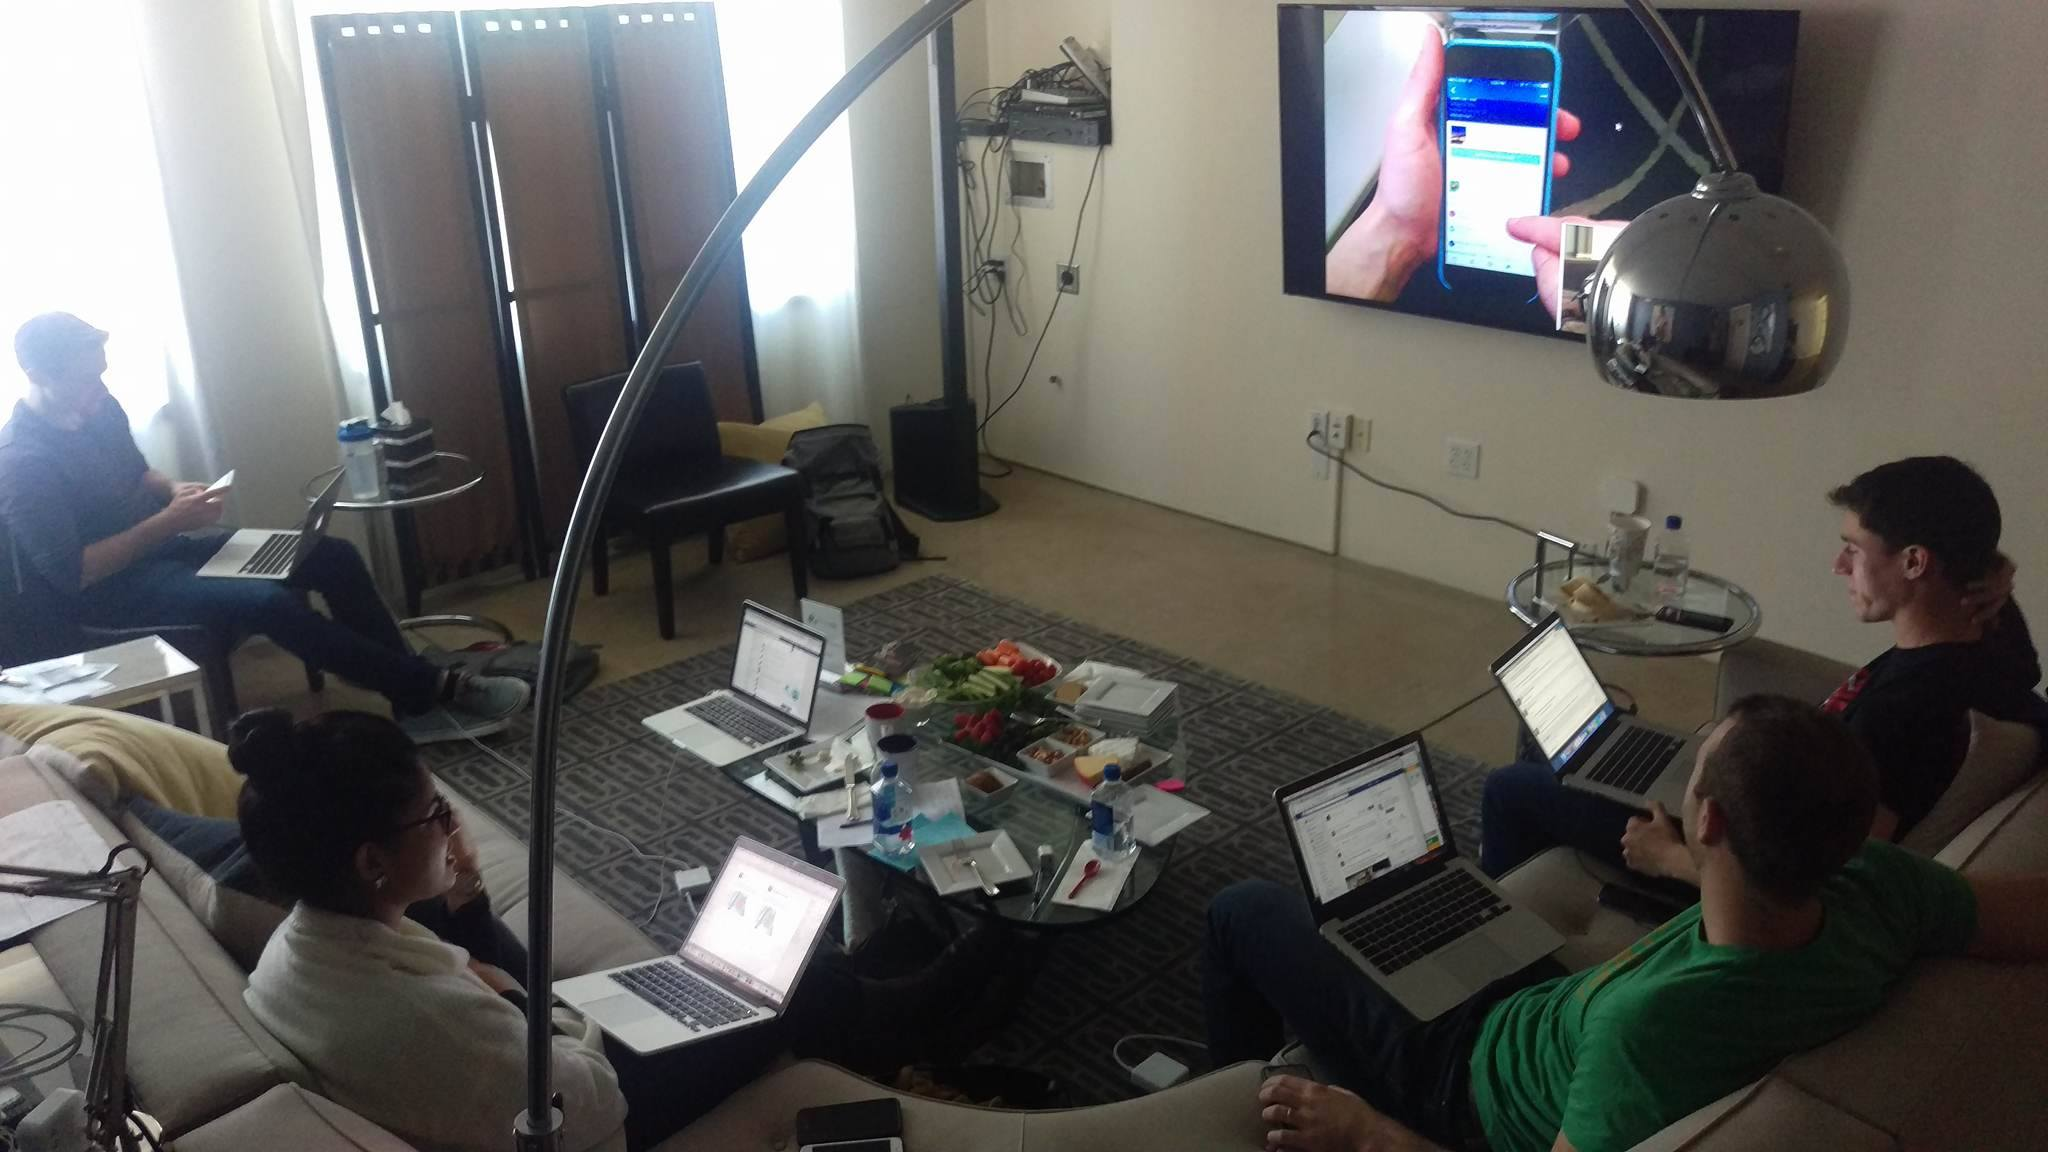 The product team observes UX sessions from the Observation Room.